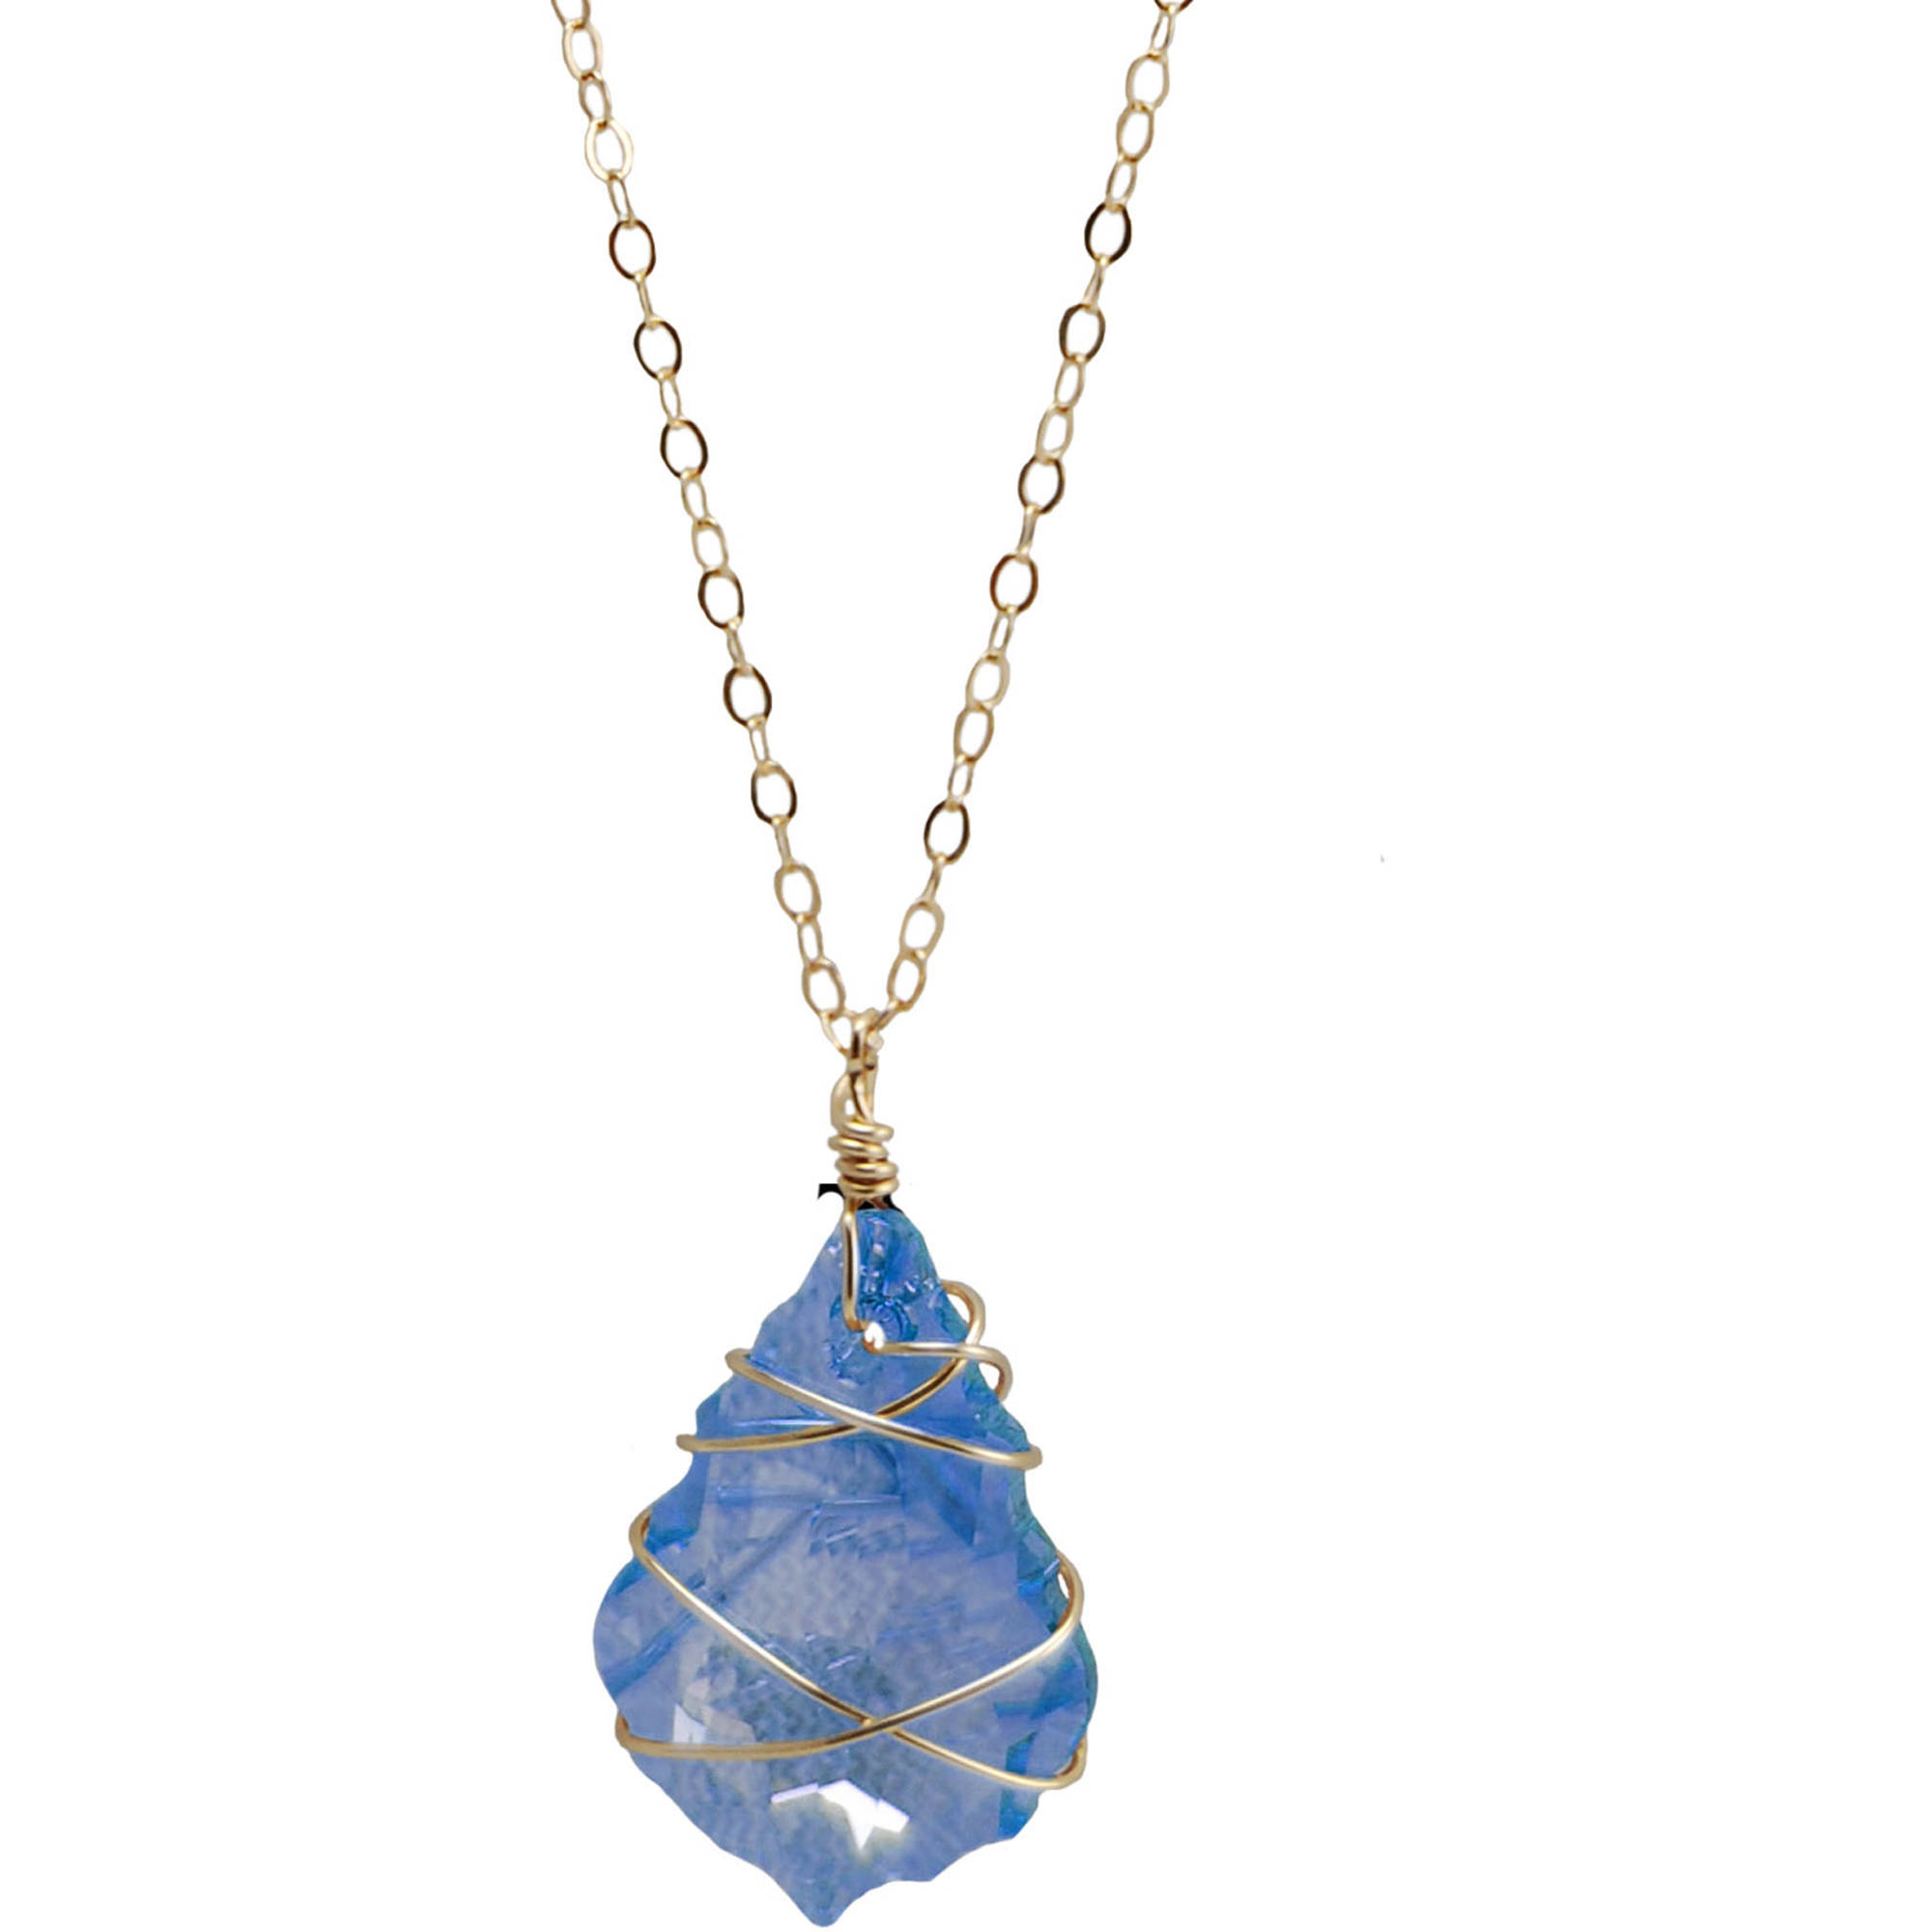 Miss Zoe by Calinana Wire Wrapped Swarovki Crystal Gold Fill Necklace, Blue